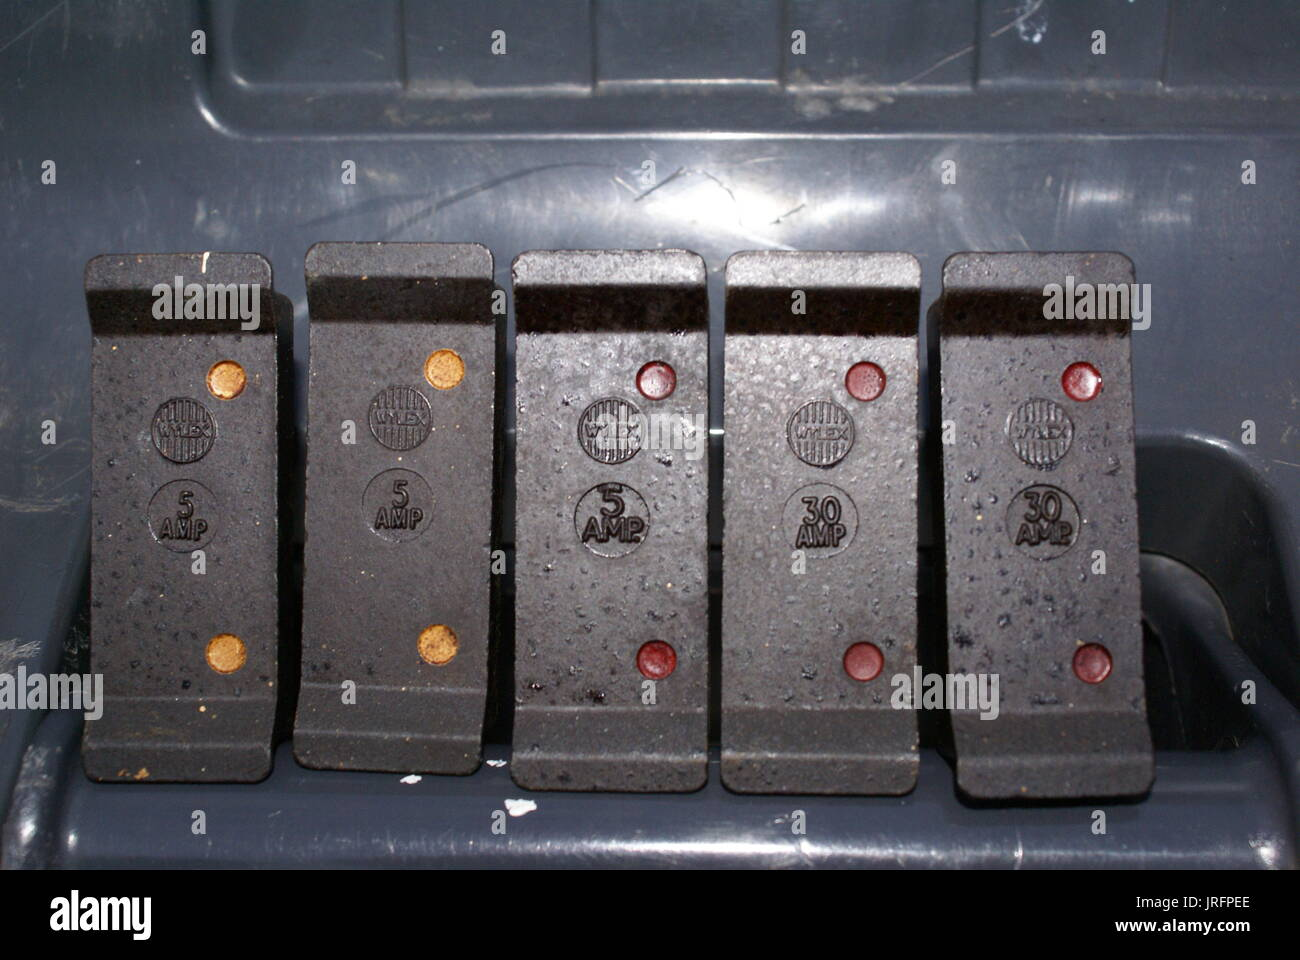 Resetting Fuse Box After Power Cut : British power socket stock photos